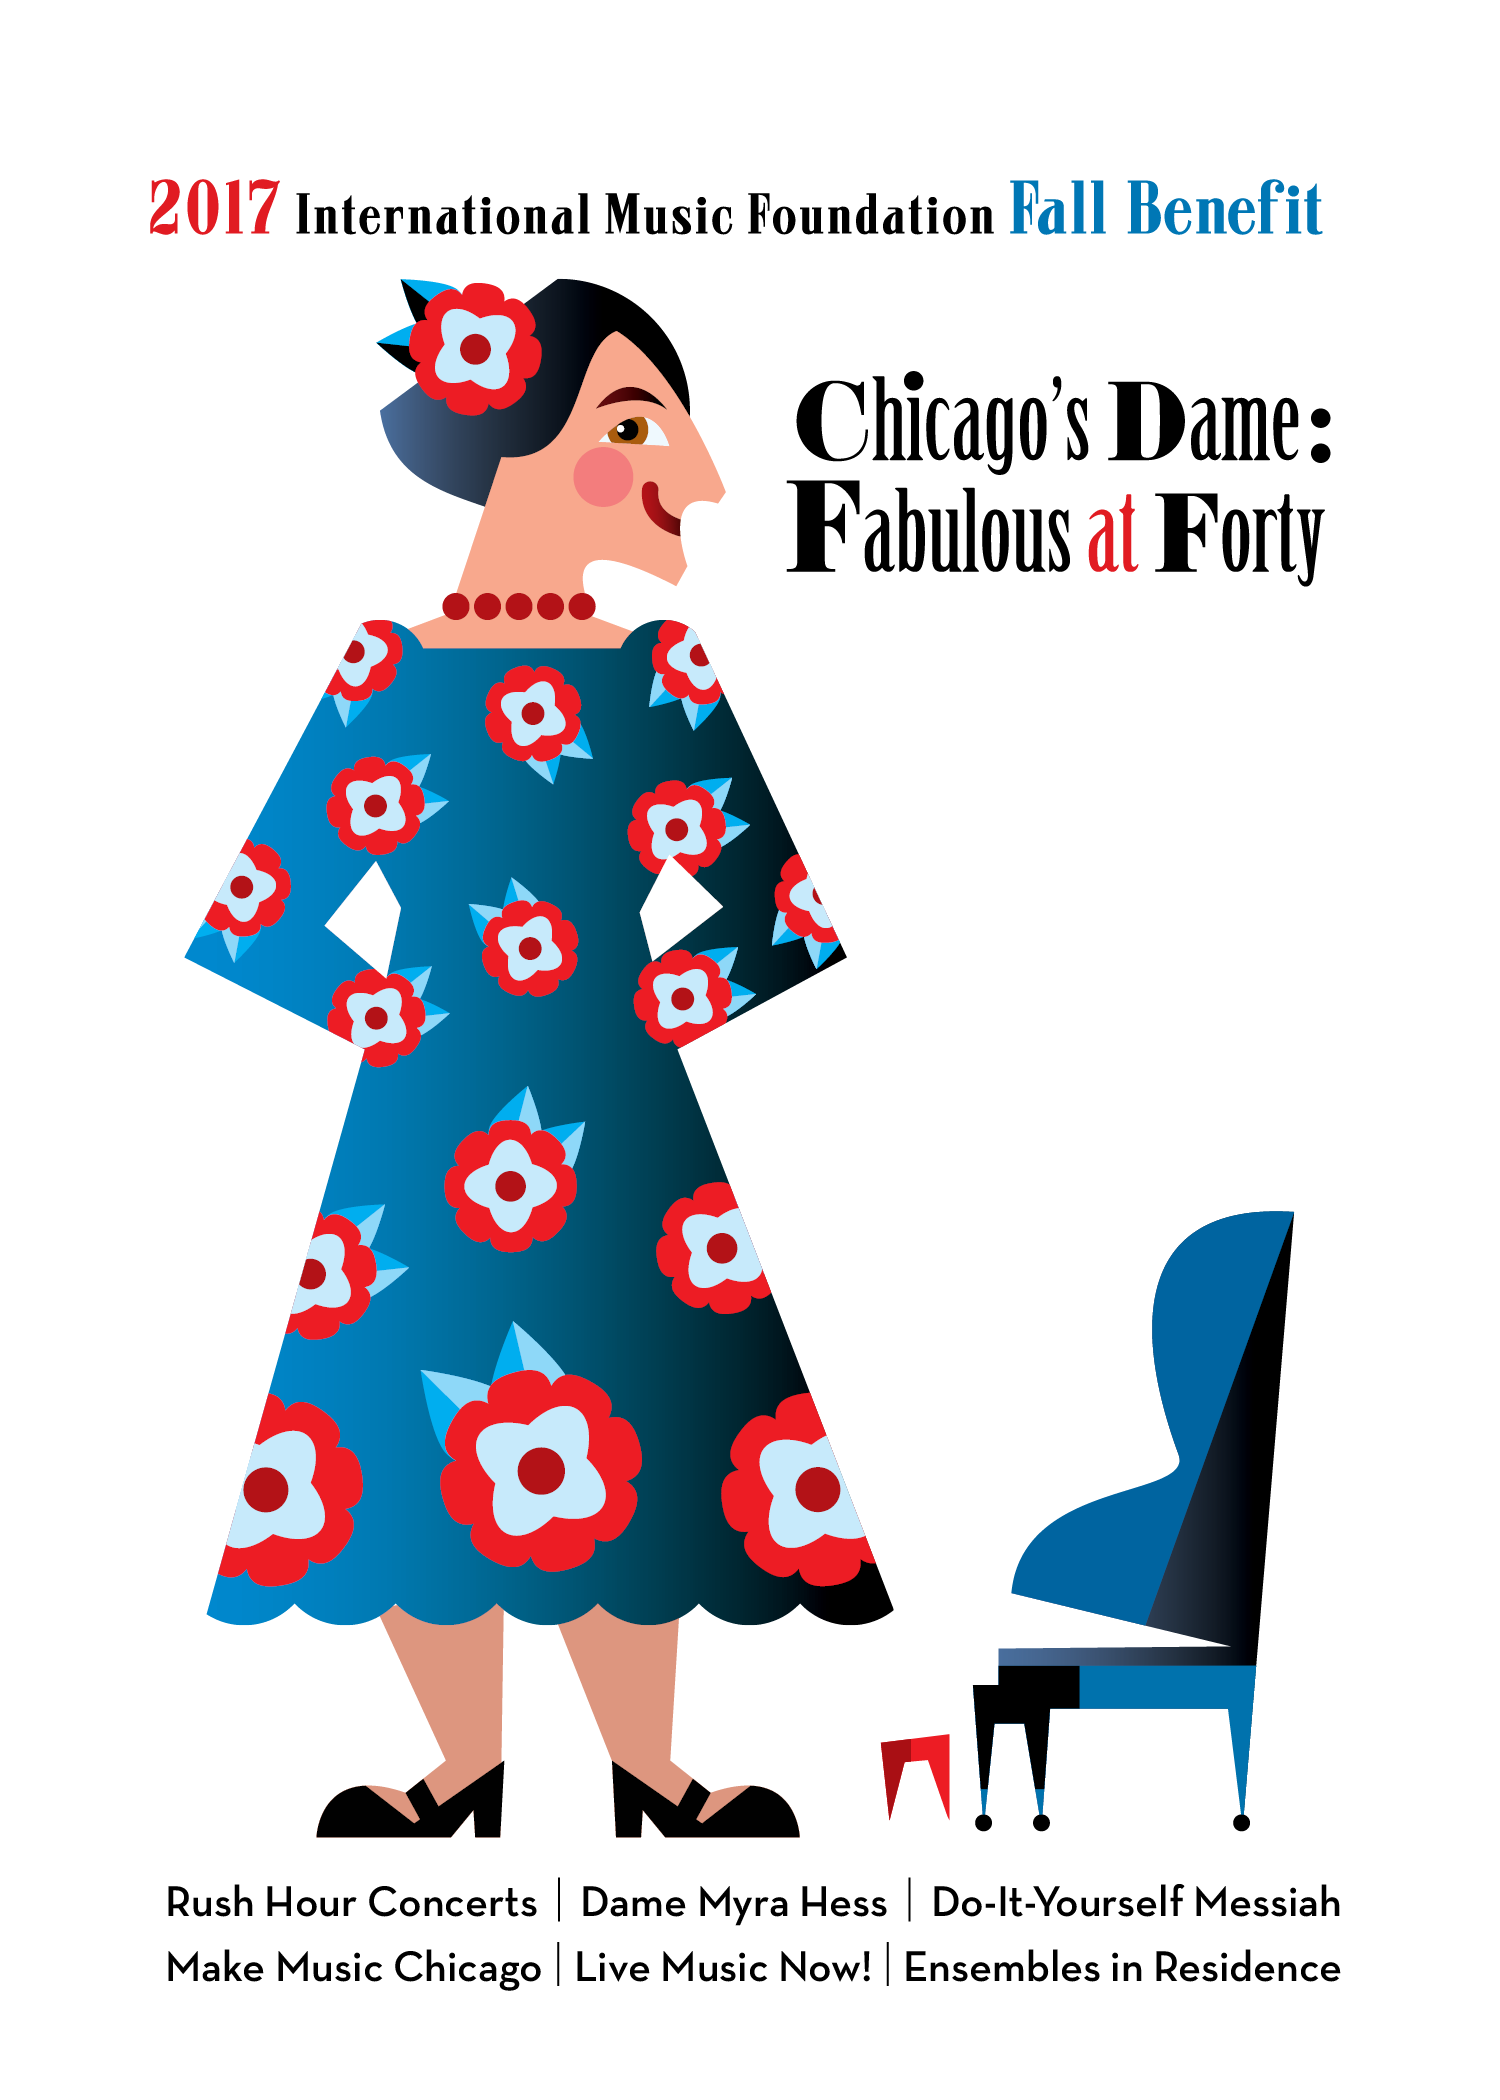 Chicagos dame fabulous at forty international music foundation event details the international music foundation solutioingenieria Images